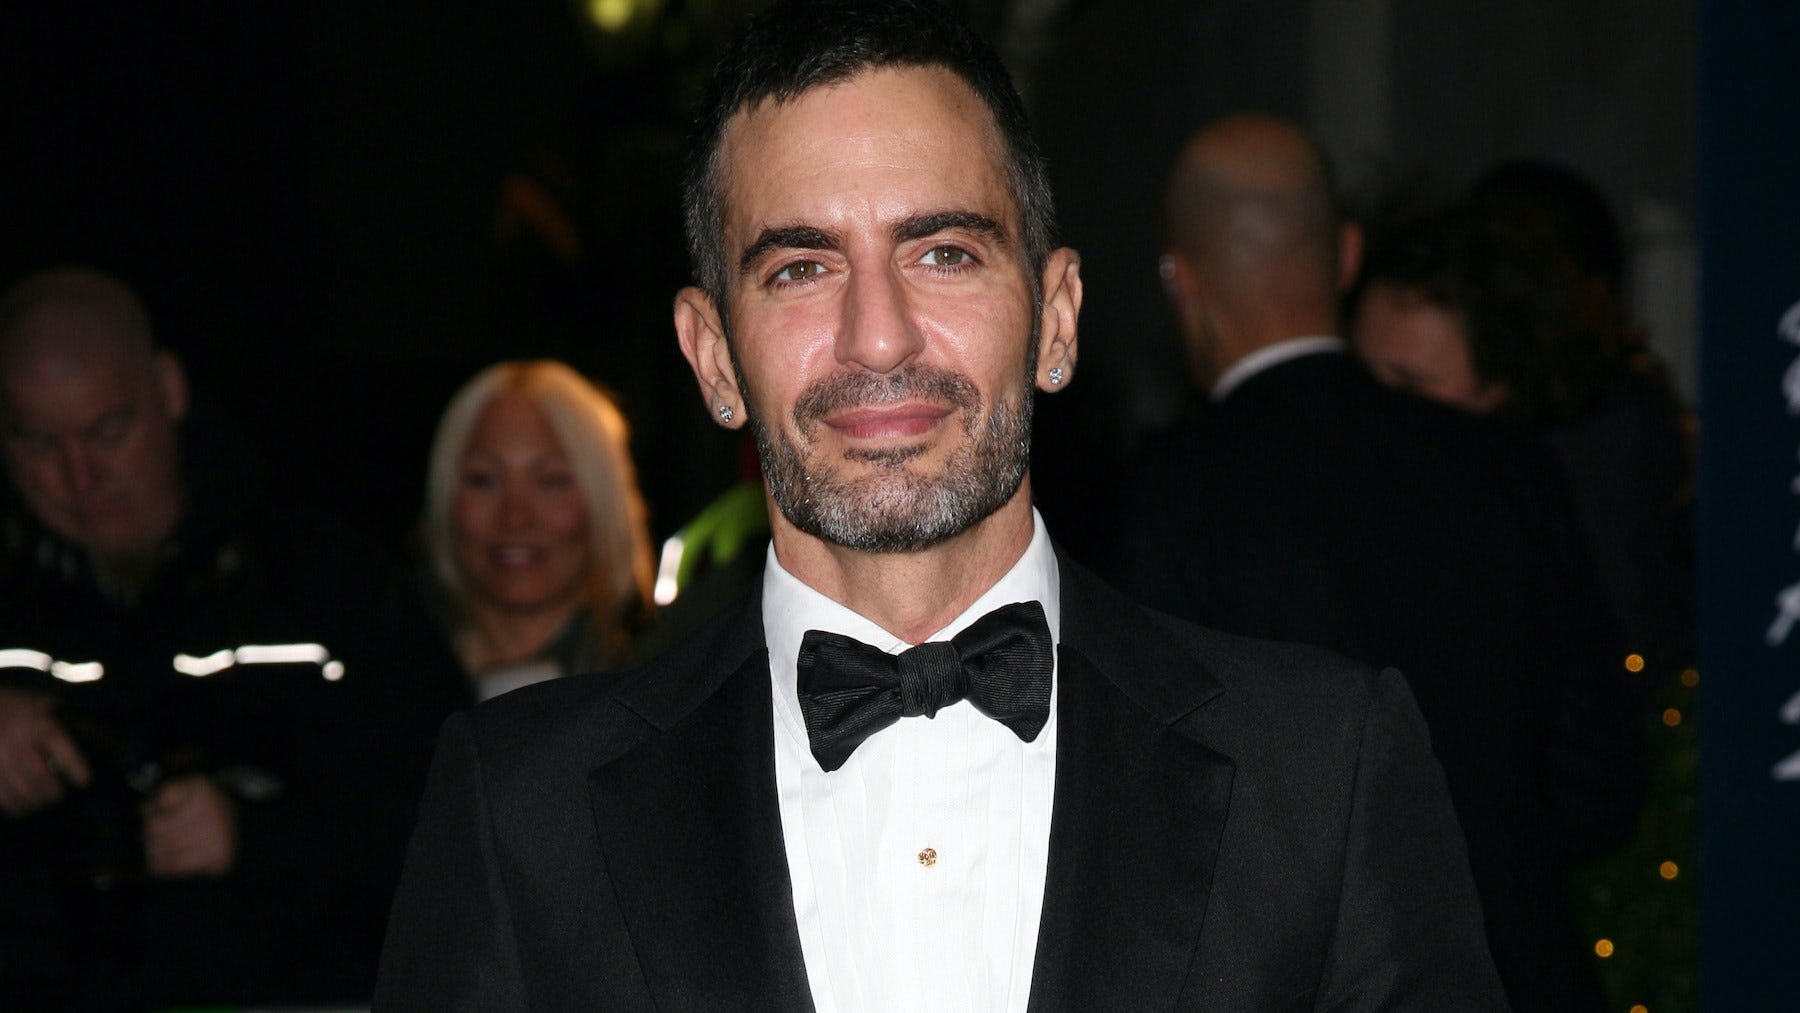 Article cover of How Marc Jacobs Fell Out of Fashion